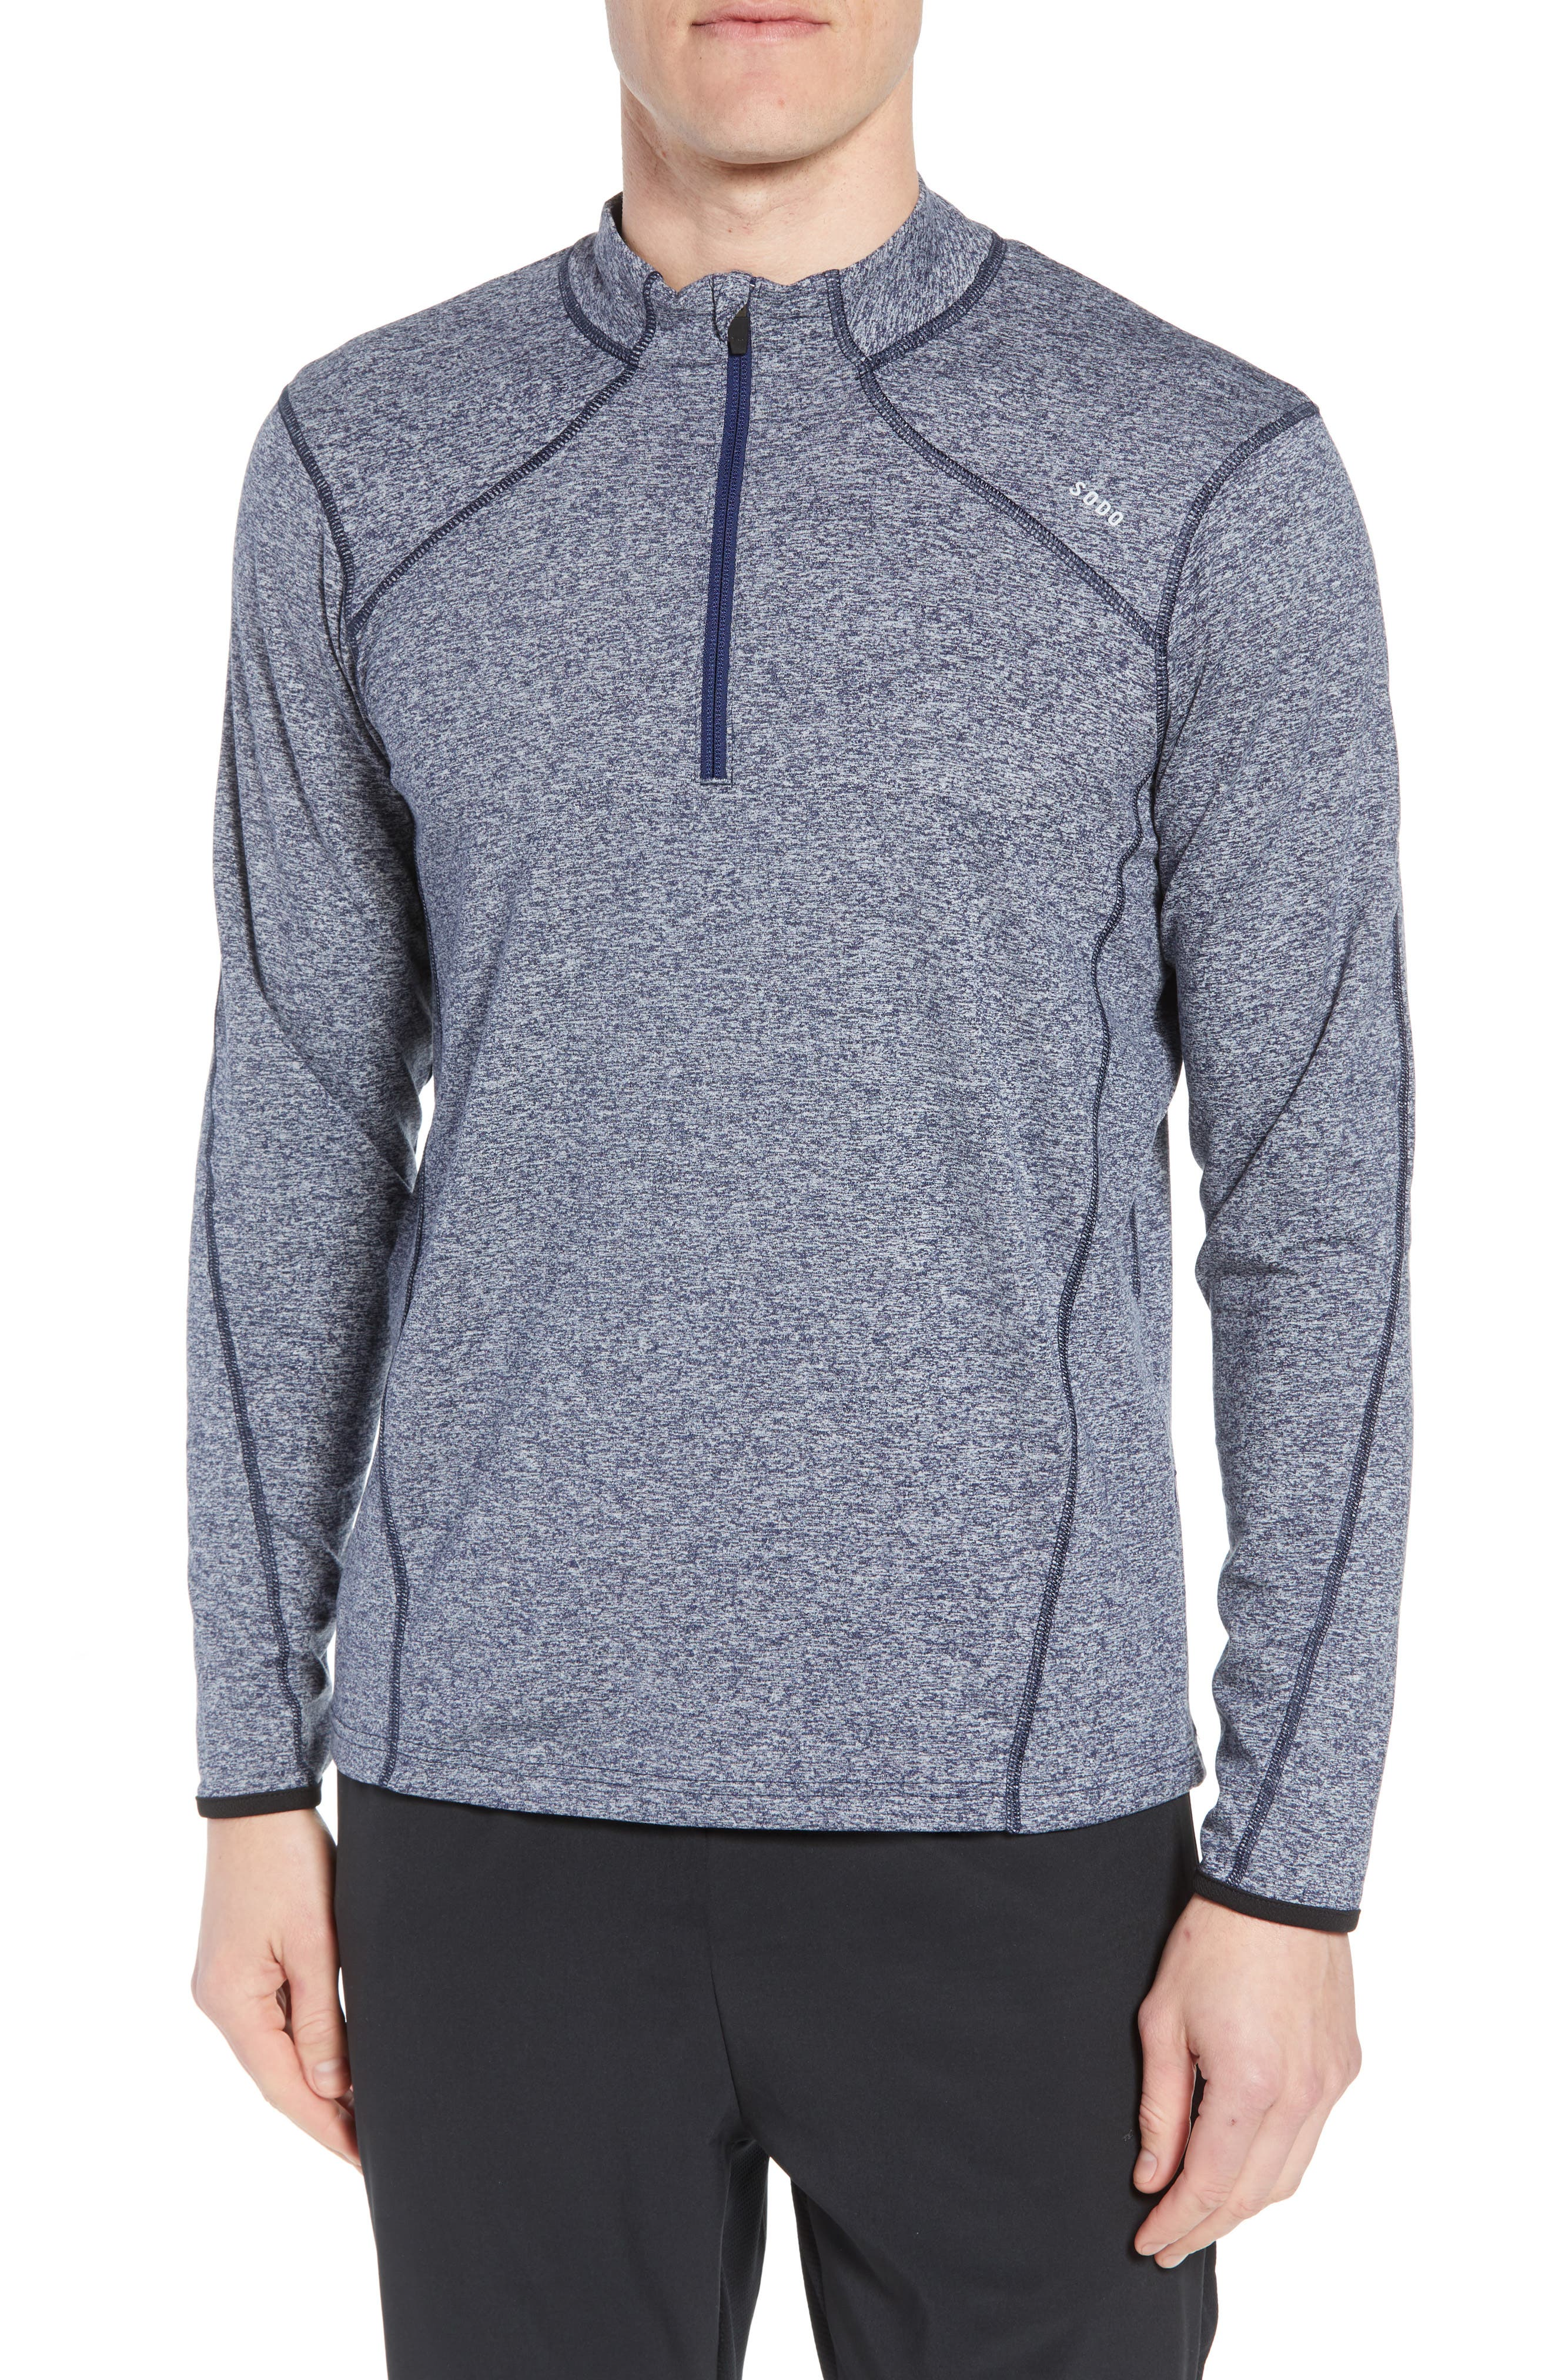 'Elevate' Moisture Wicking Stretch Quarter Zip Pullover,                         Main,                         color, Heather Navy/ Navy